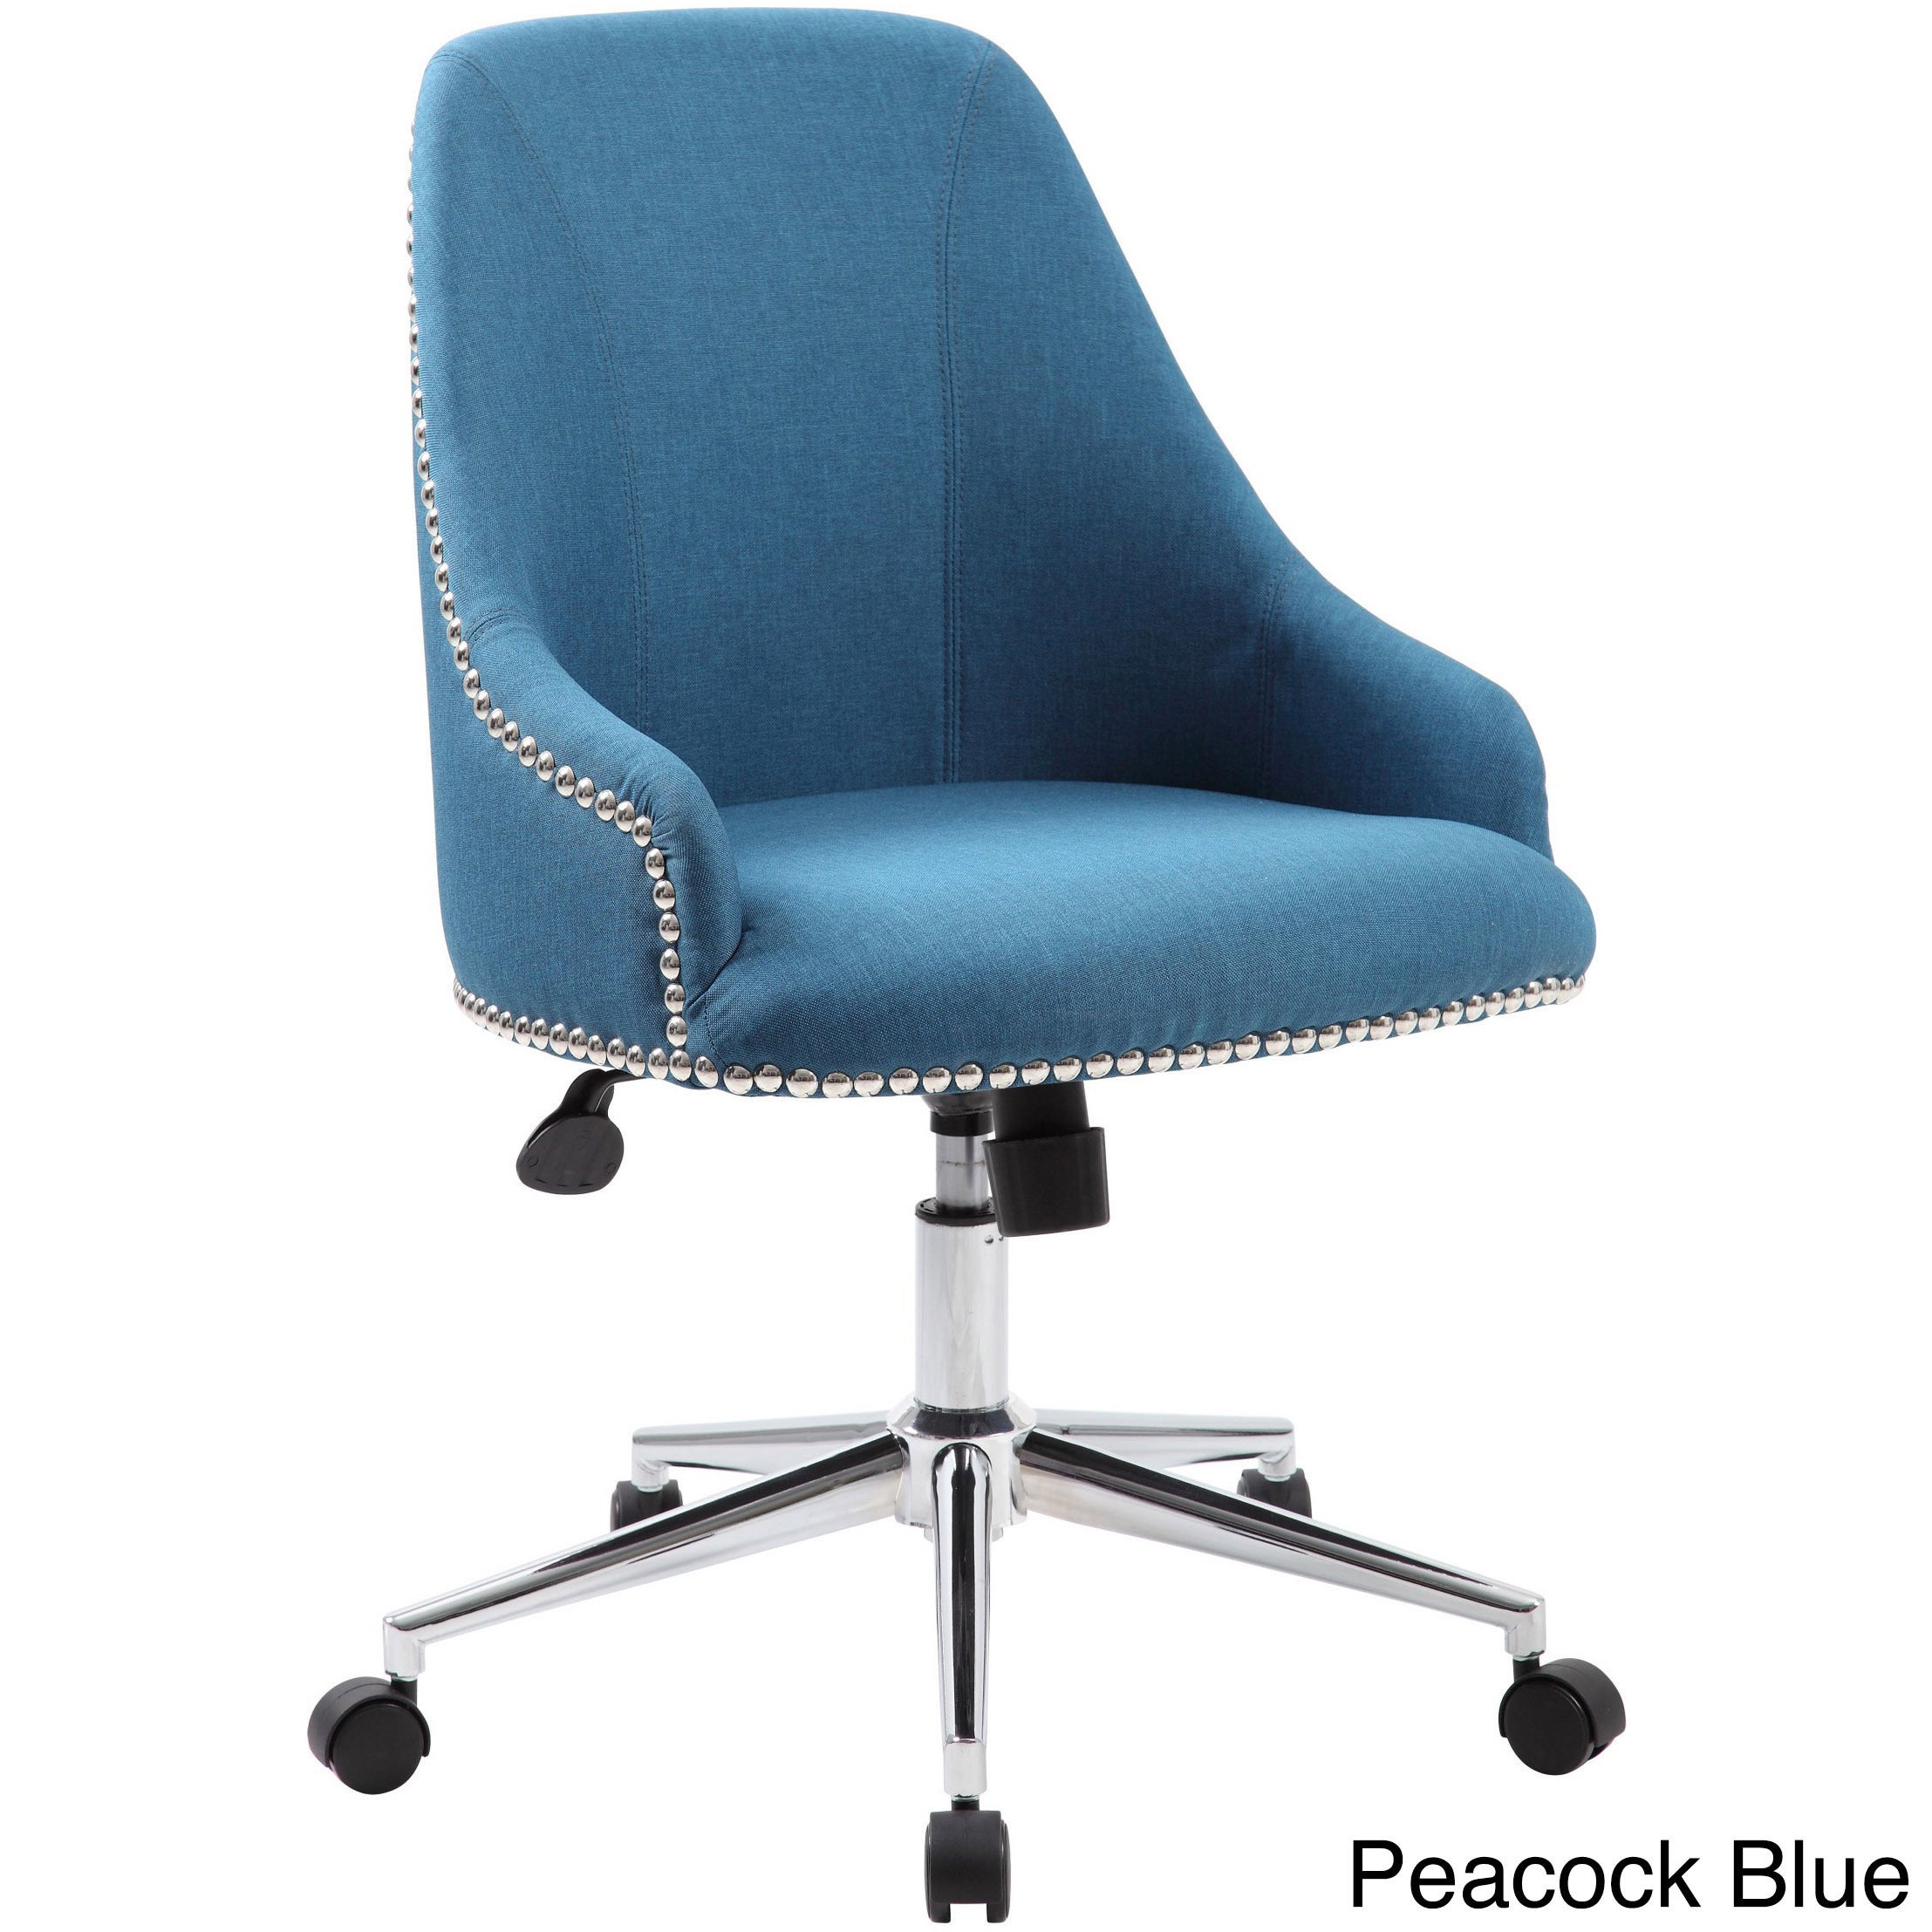 Marvelous Shop Boss Carnegie Desk Chair   Free Shipping Today   Overstock.com    10236031